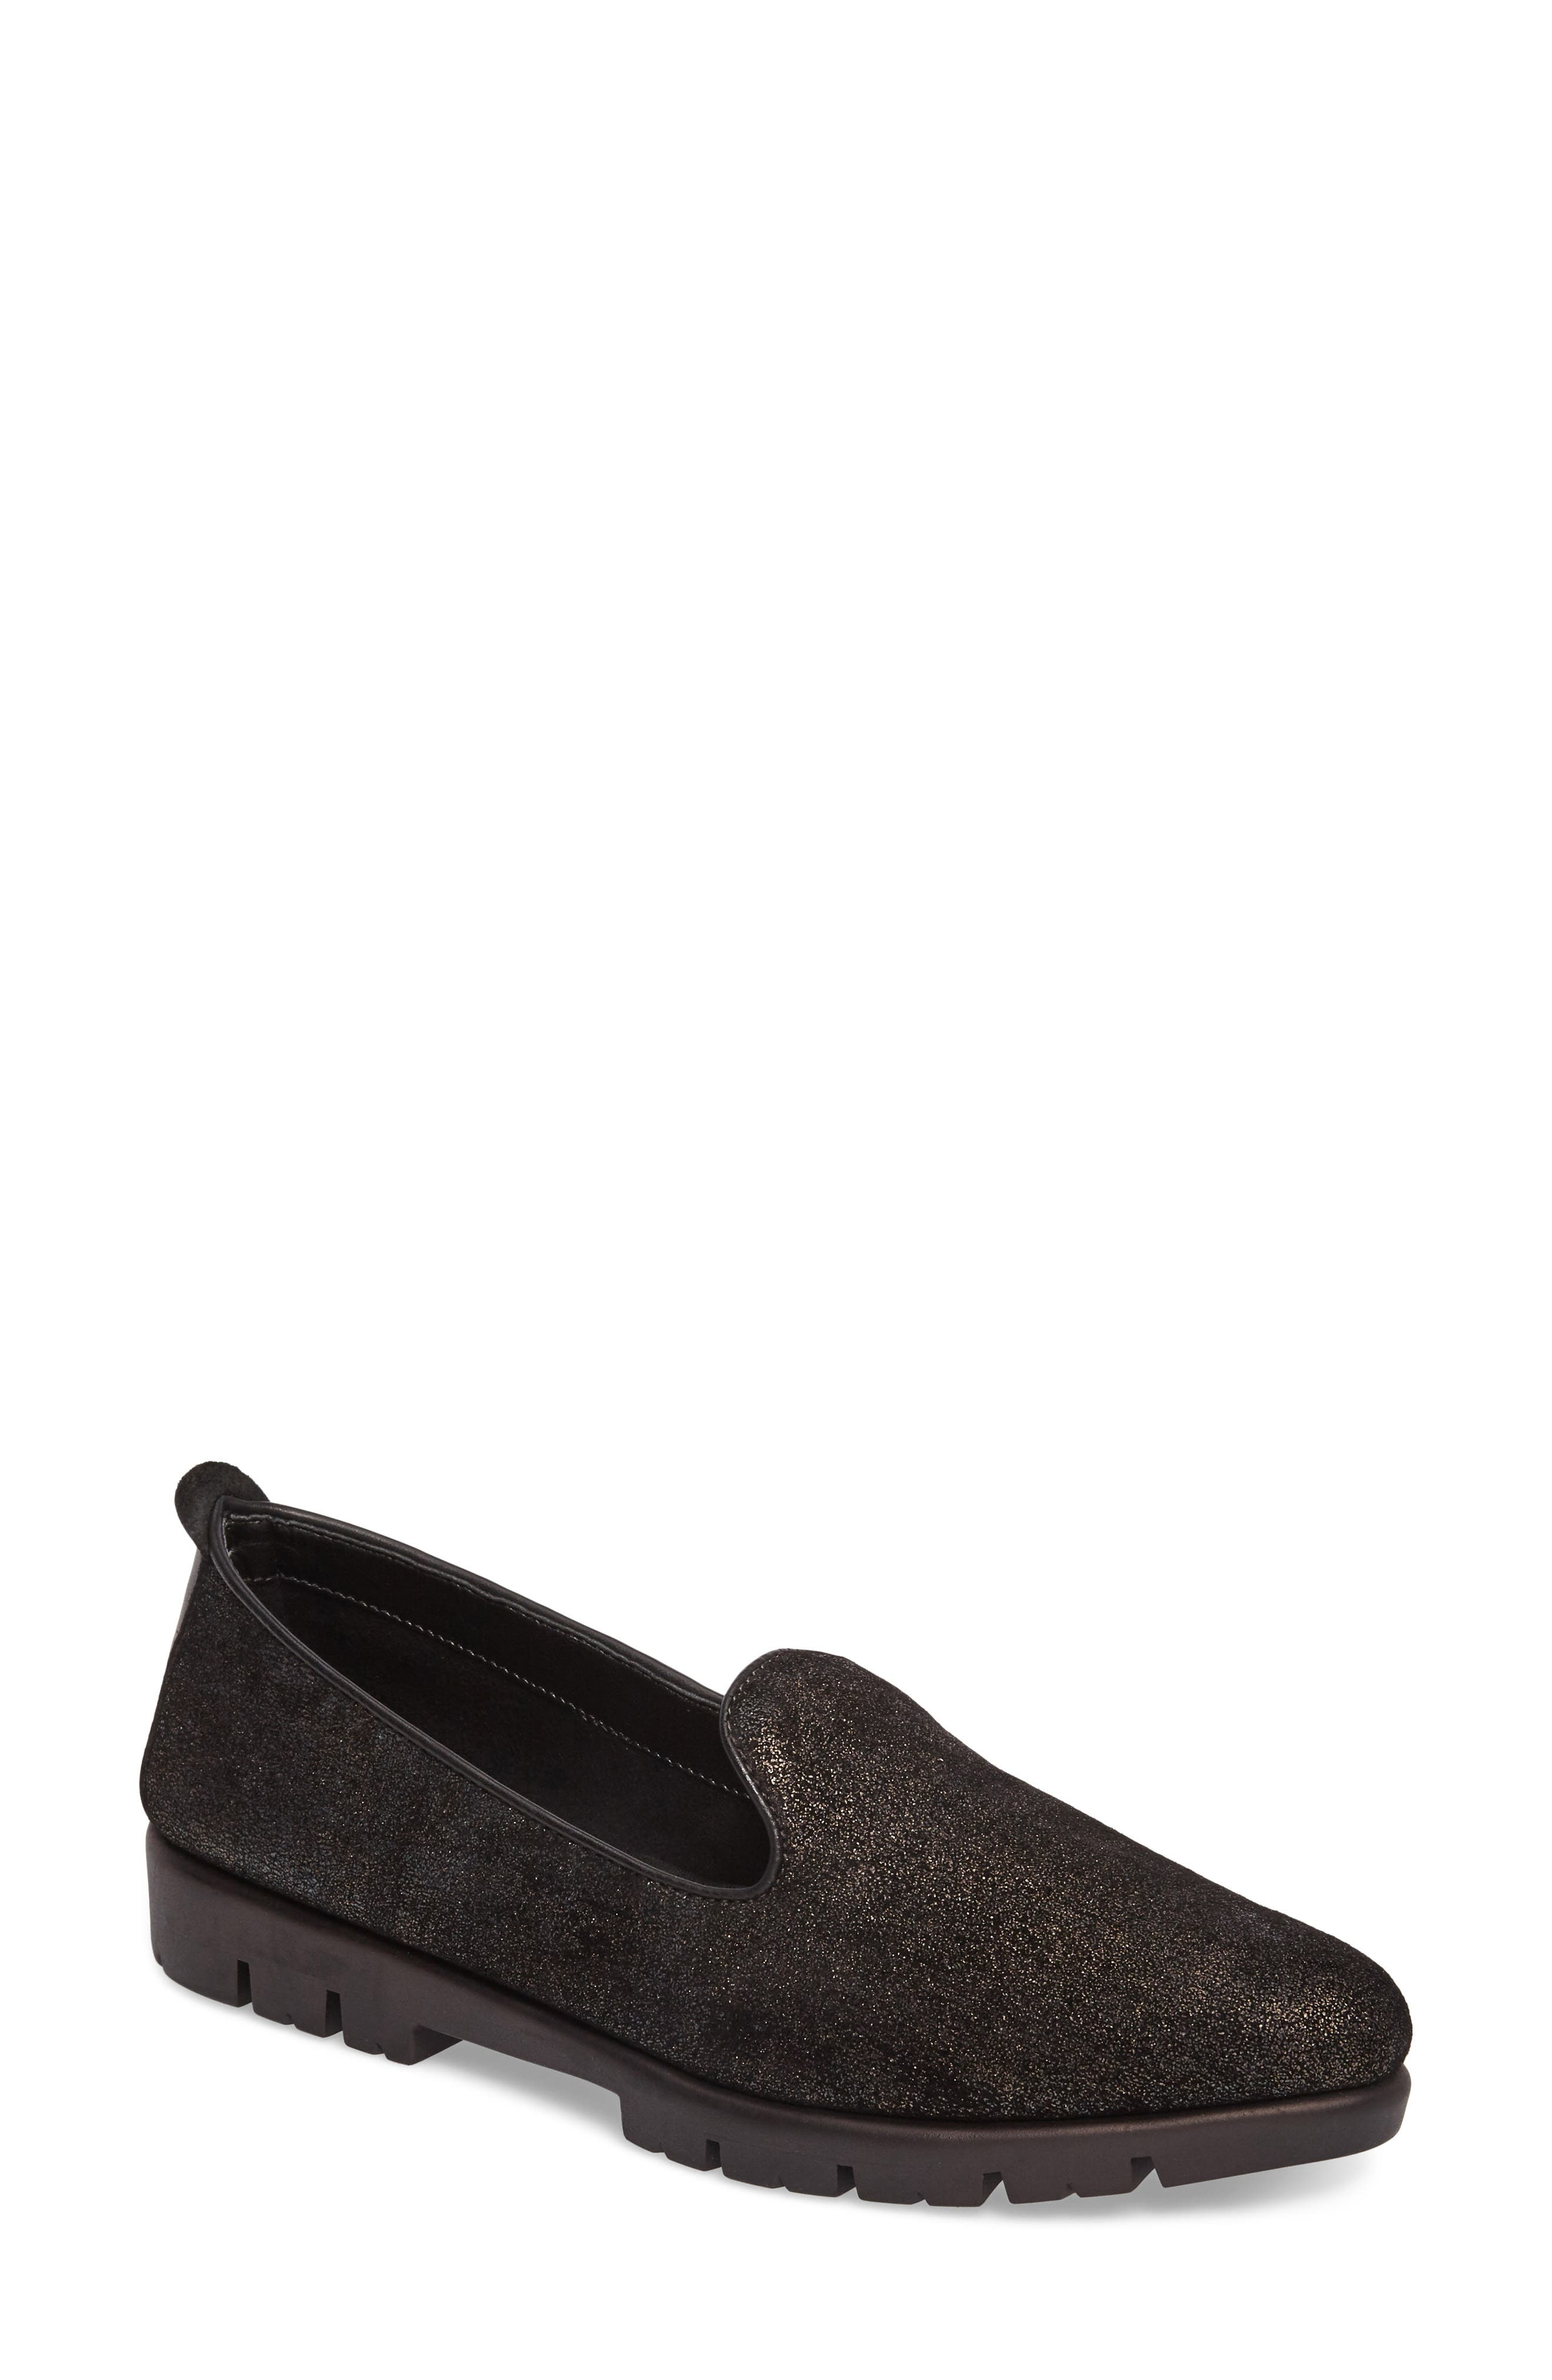 Alternate Image 1 Selected - The FLEXX 'Smokin Hot' Loafer (Women)